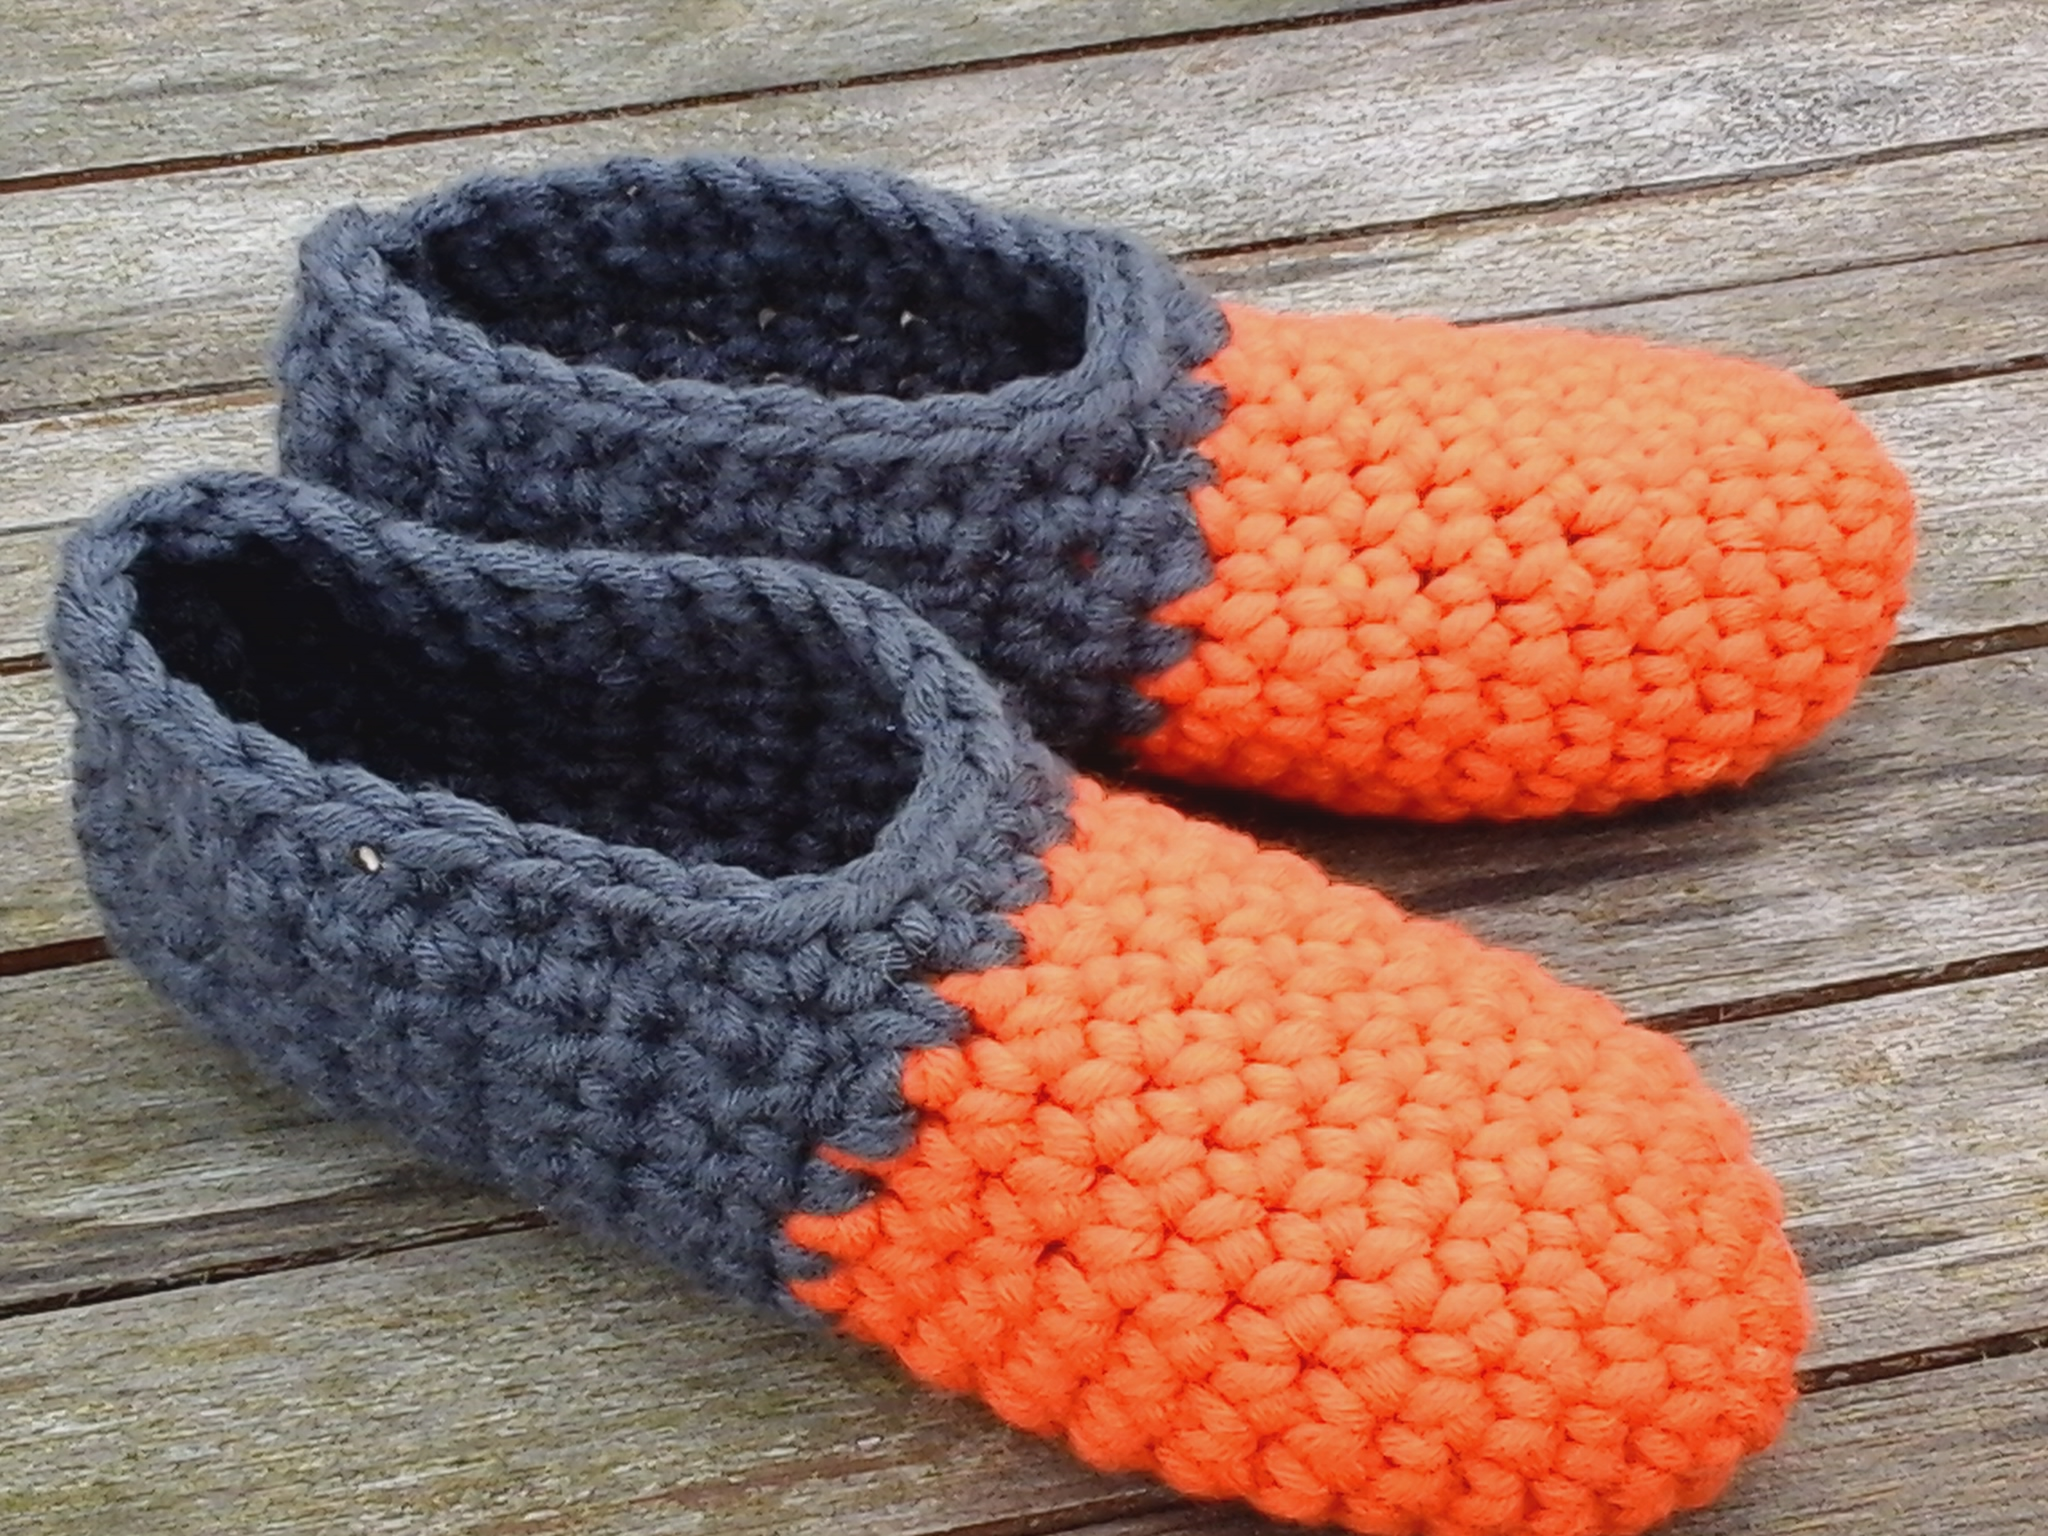 Free pattern crochet slippers knitwear design for modern makers free pattern crochet slippers simple toe up slippers in myboshi yarn bankloansurffo Choice Image